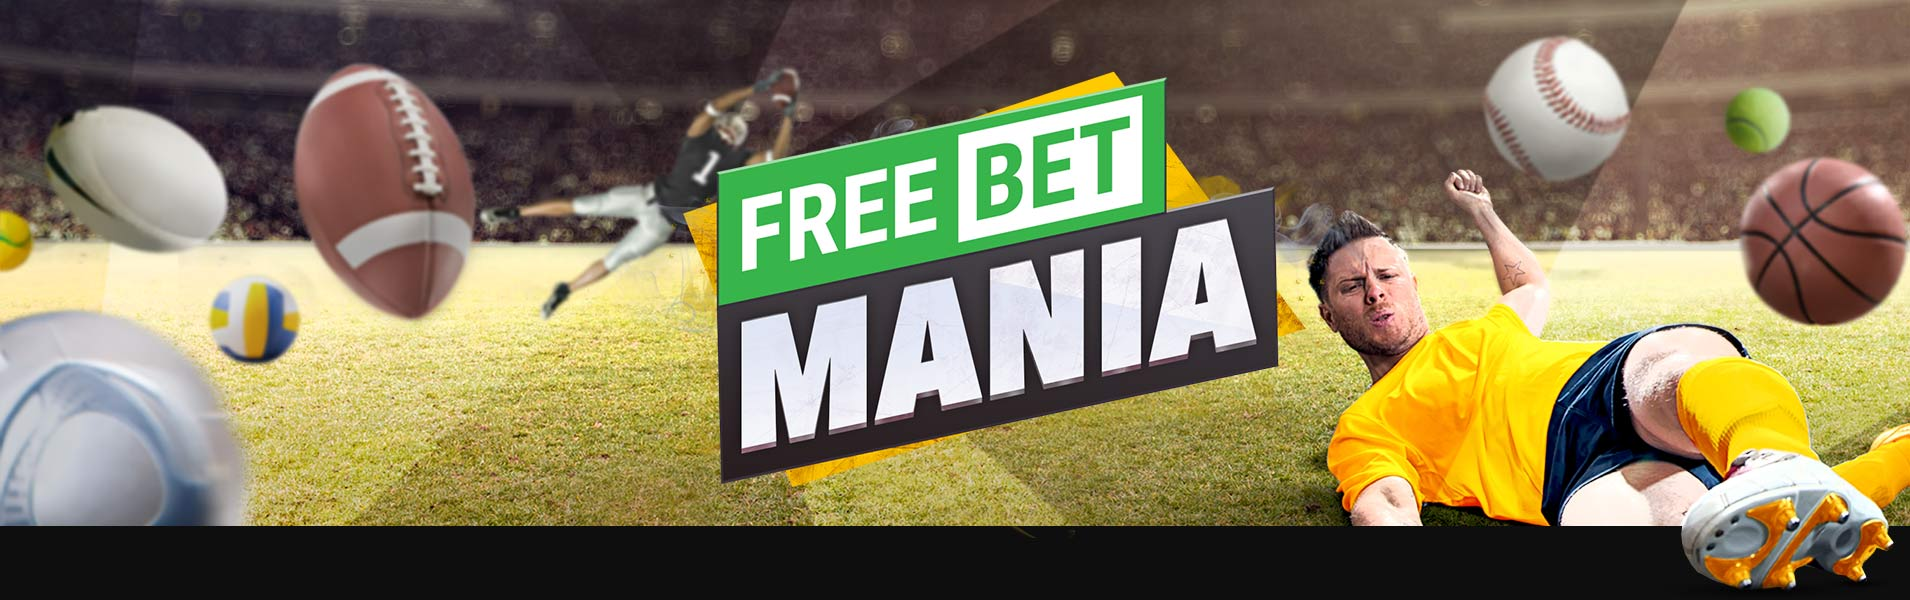 FreeBet Mania by bwin